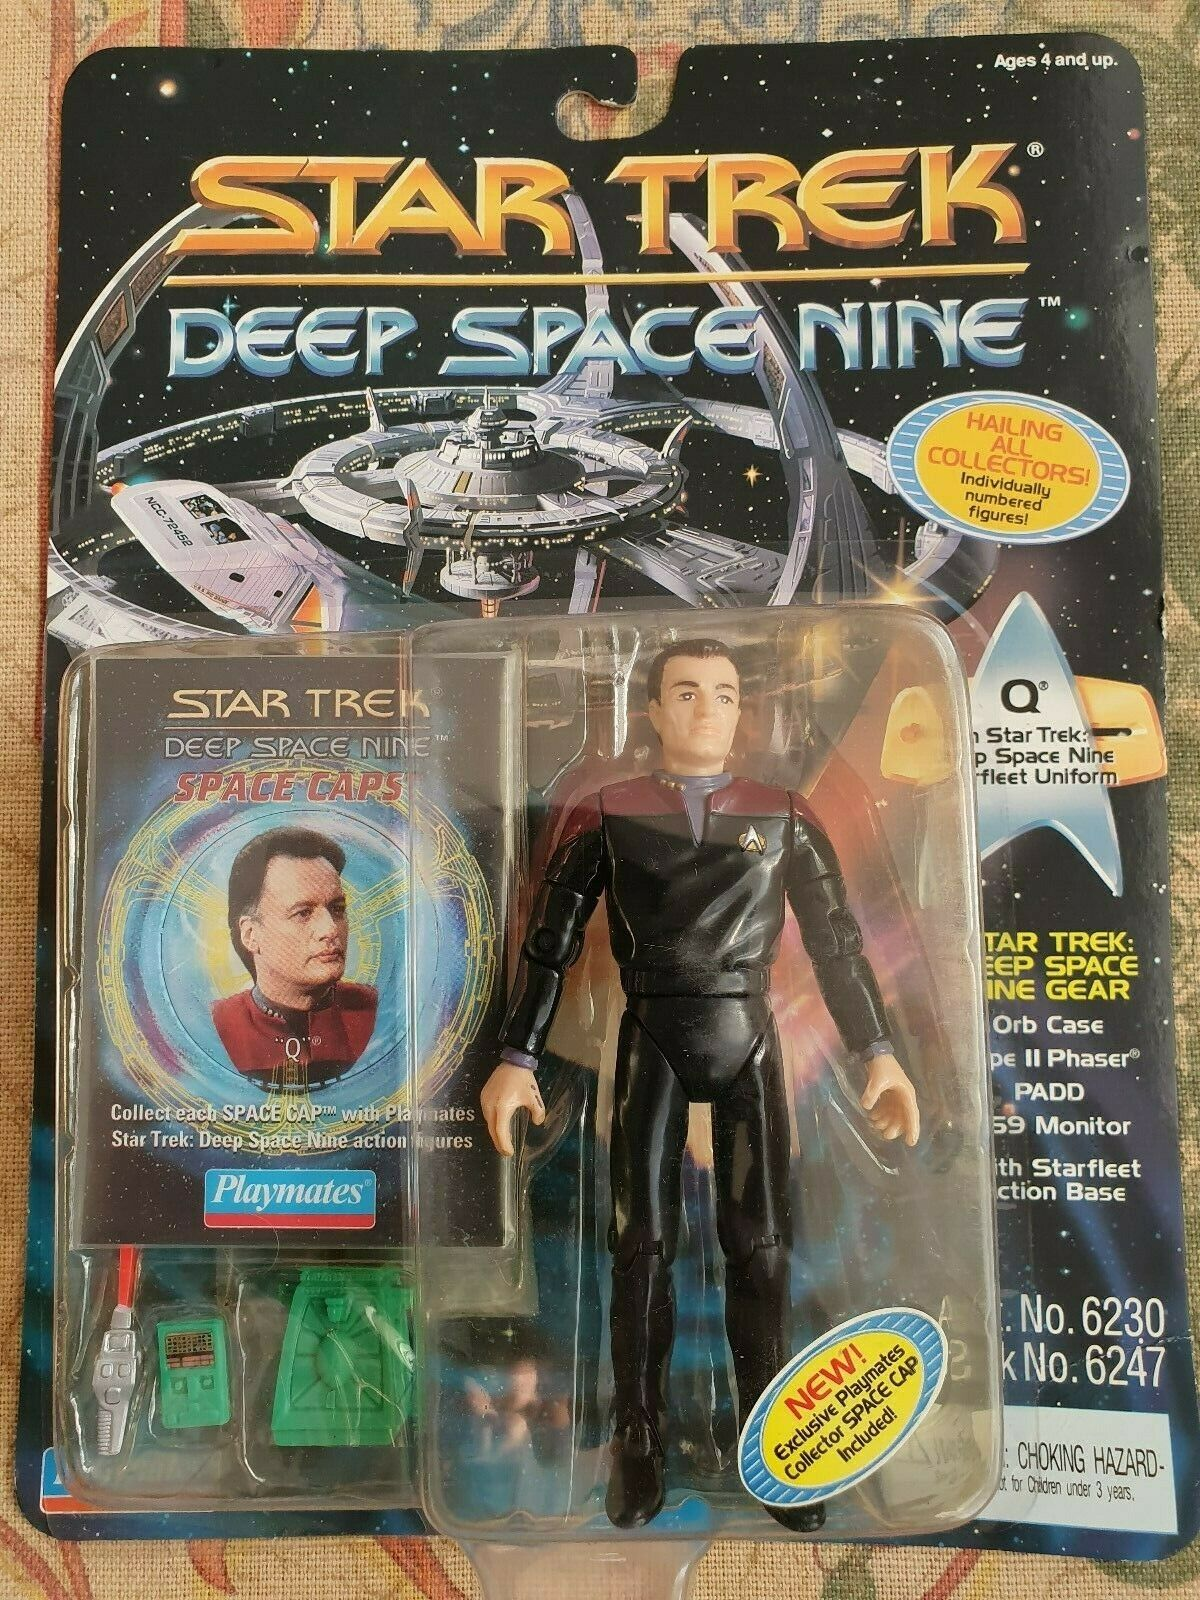 PLAYMATES STAR TREK DEEP SPACE NINE SEALED ON CARD ACTION 4